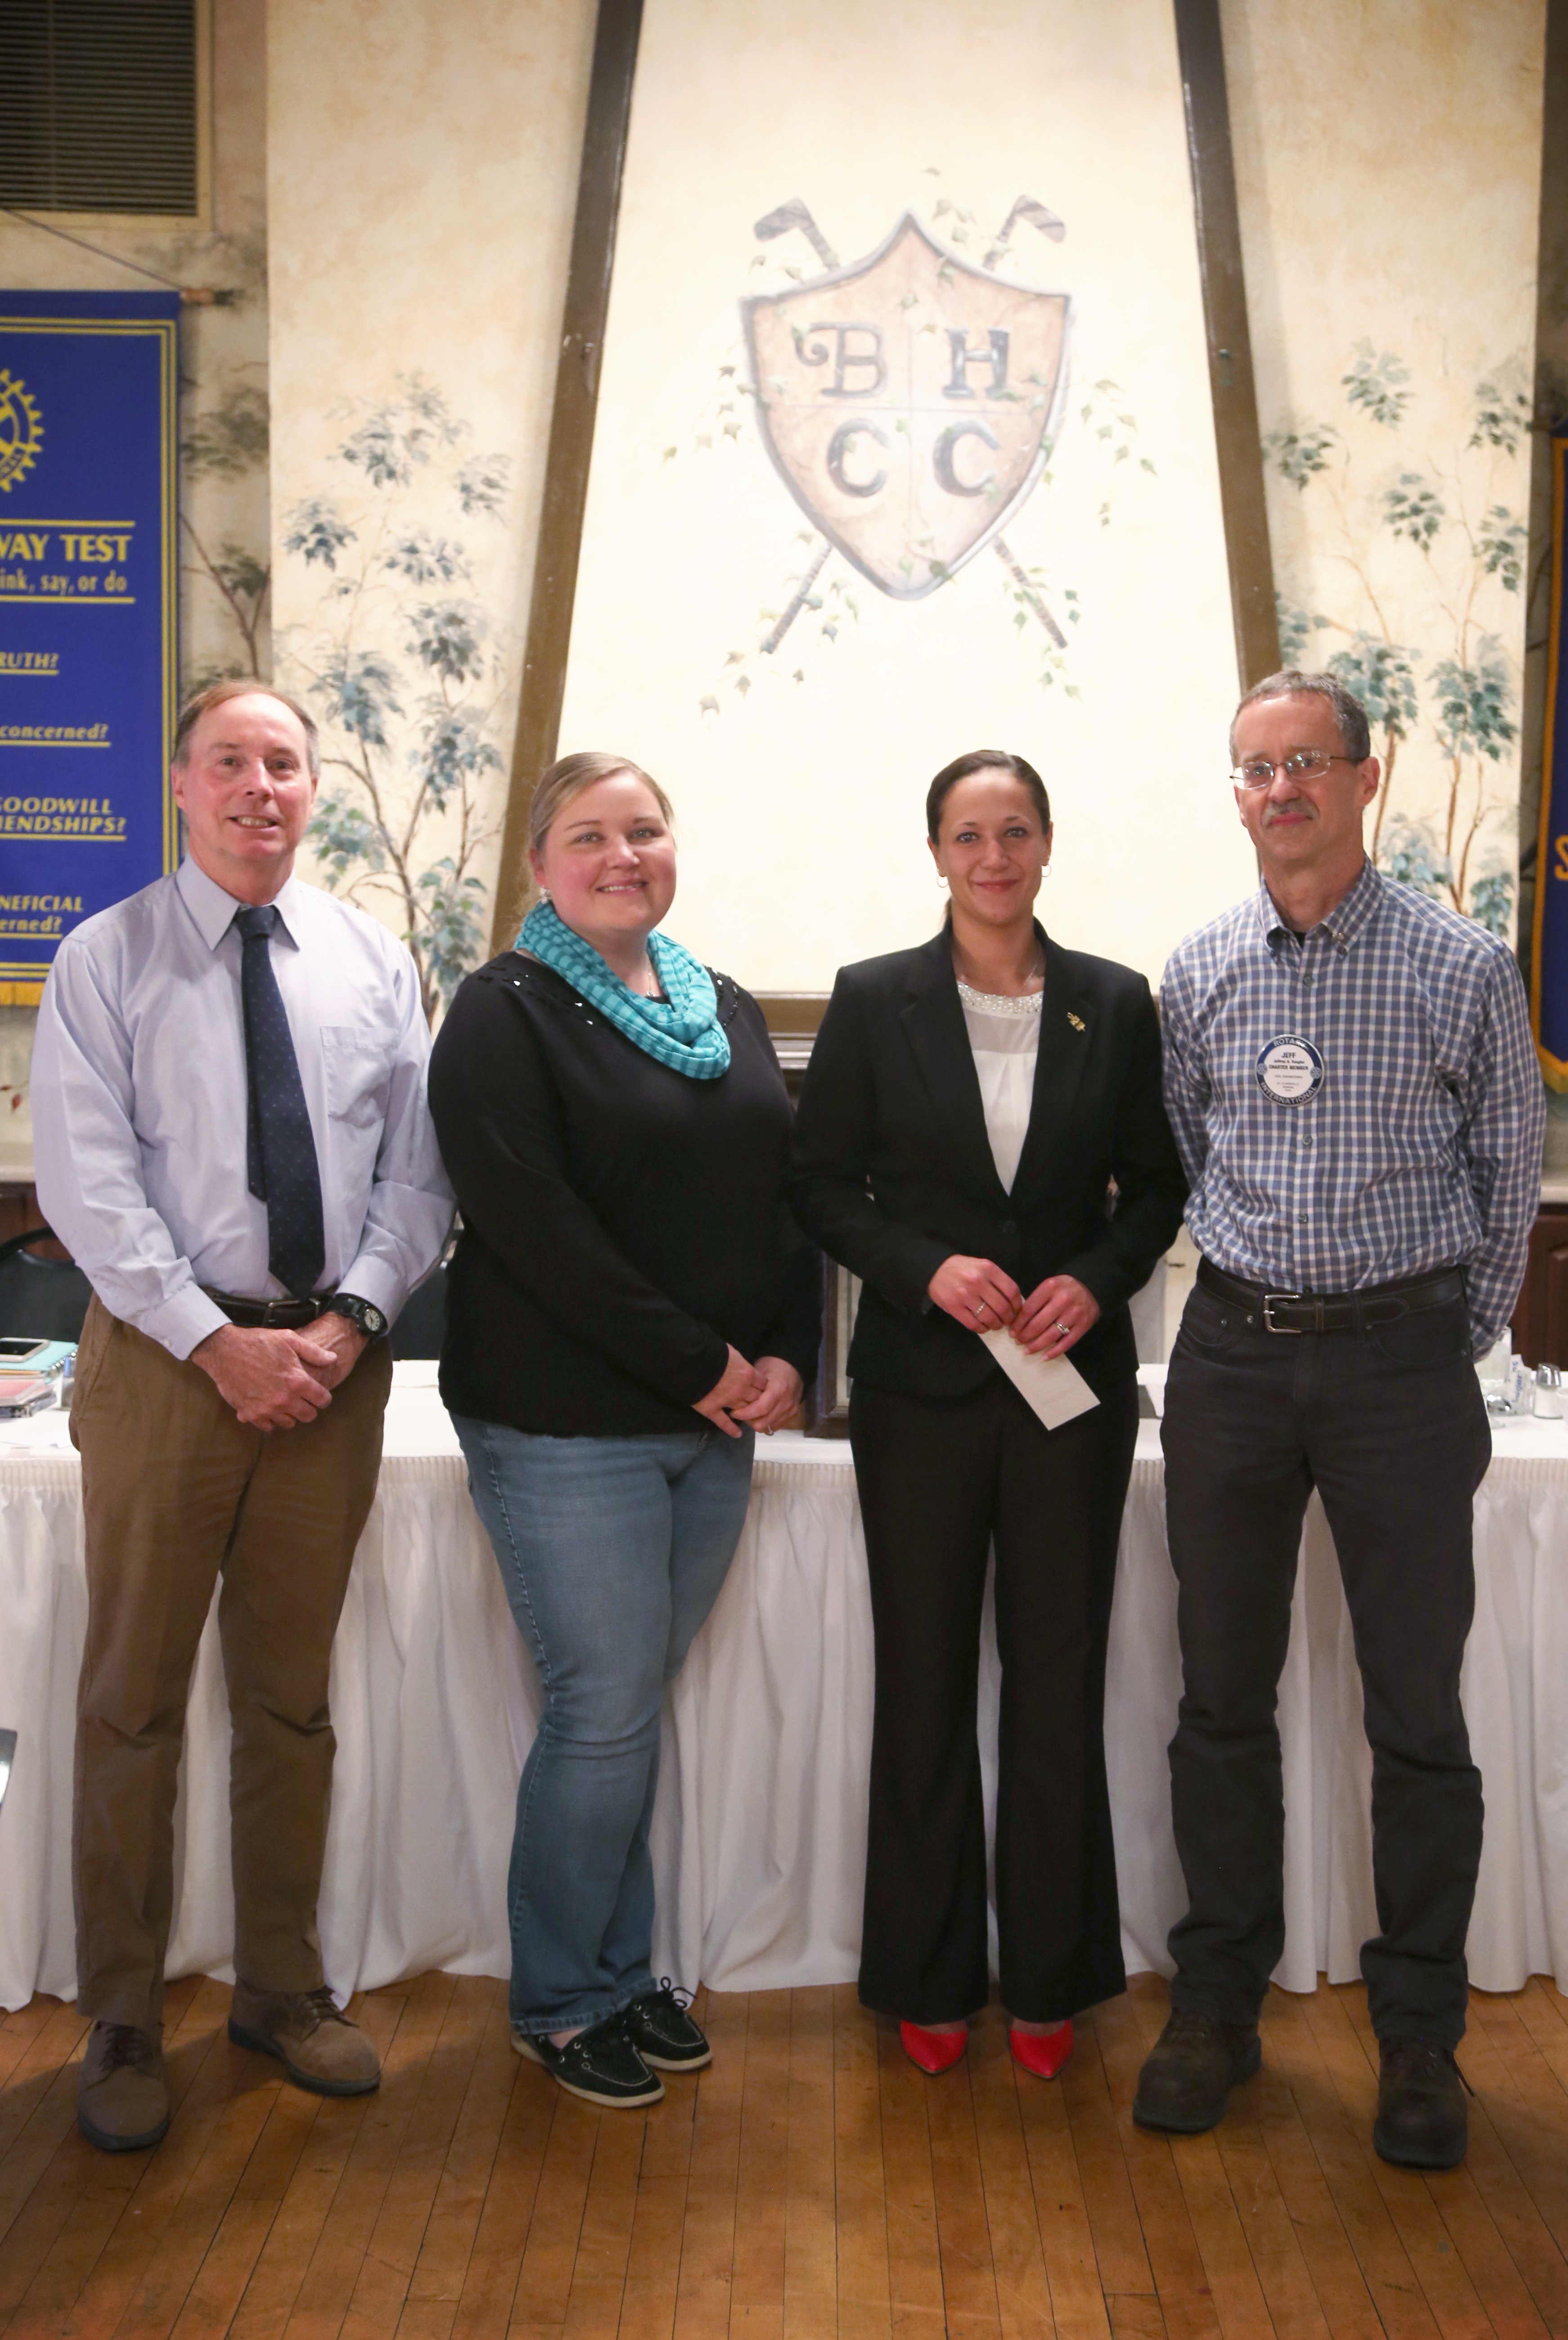 Pictured (left to right): Chuck Dawson, Belmont College Professor and Rotary Member; Rebecca Fabry- Sunrise Rotary President; Amanda Teeman, Scholarship Recipient; and Jeff Vaughn, Sunrise Rotary Scholarship Committee Chair.